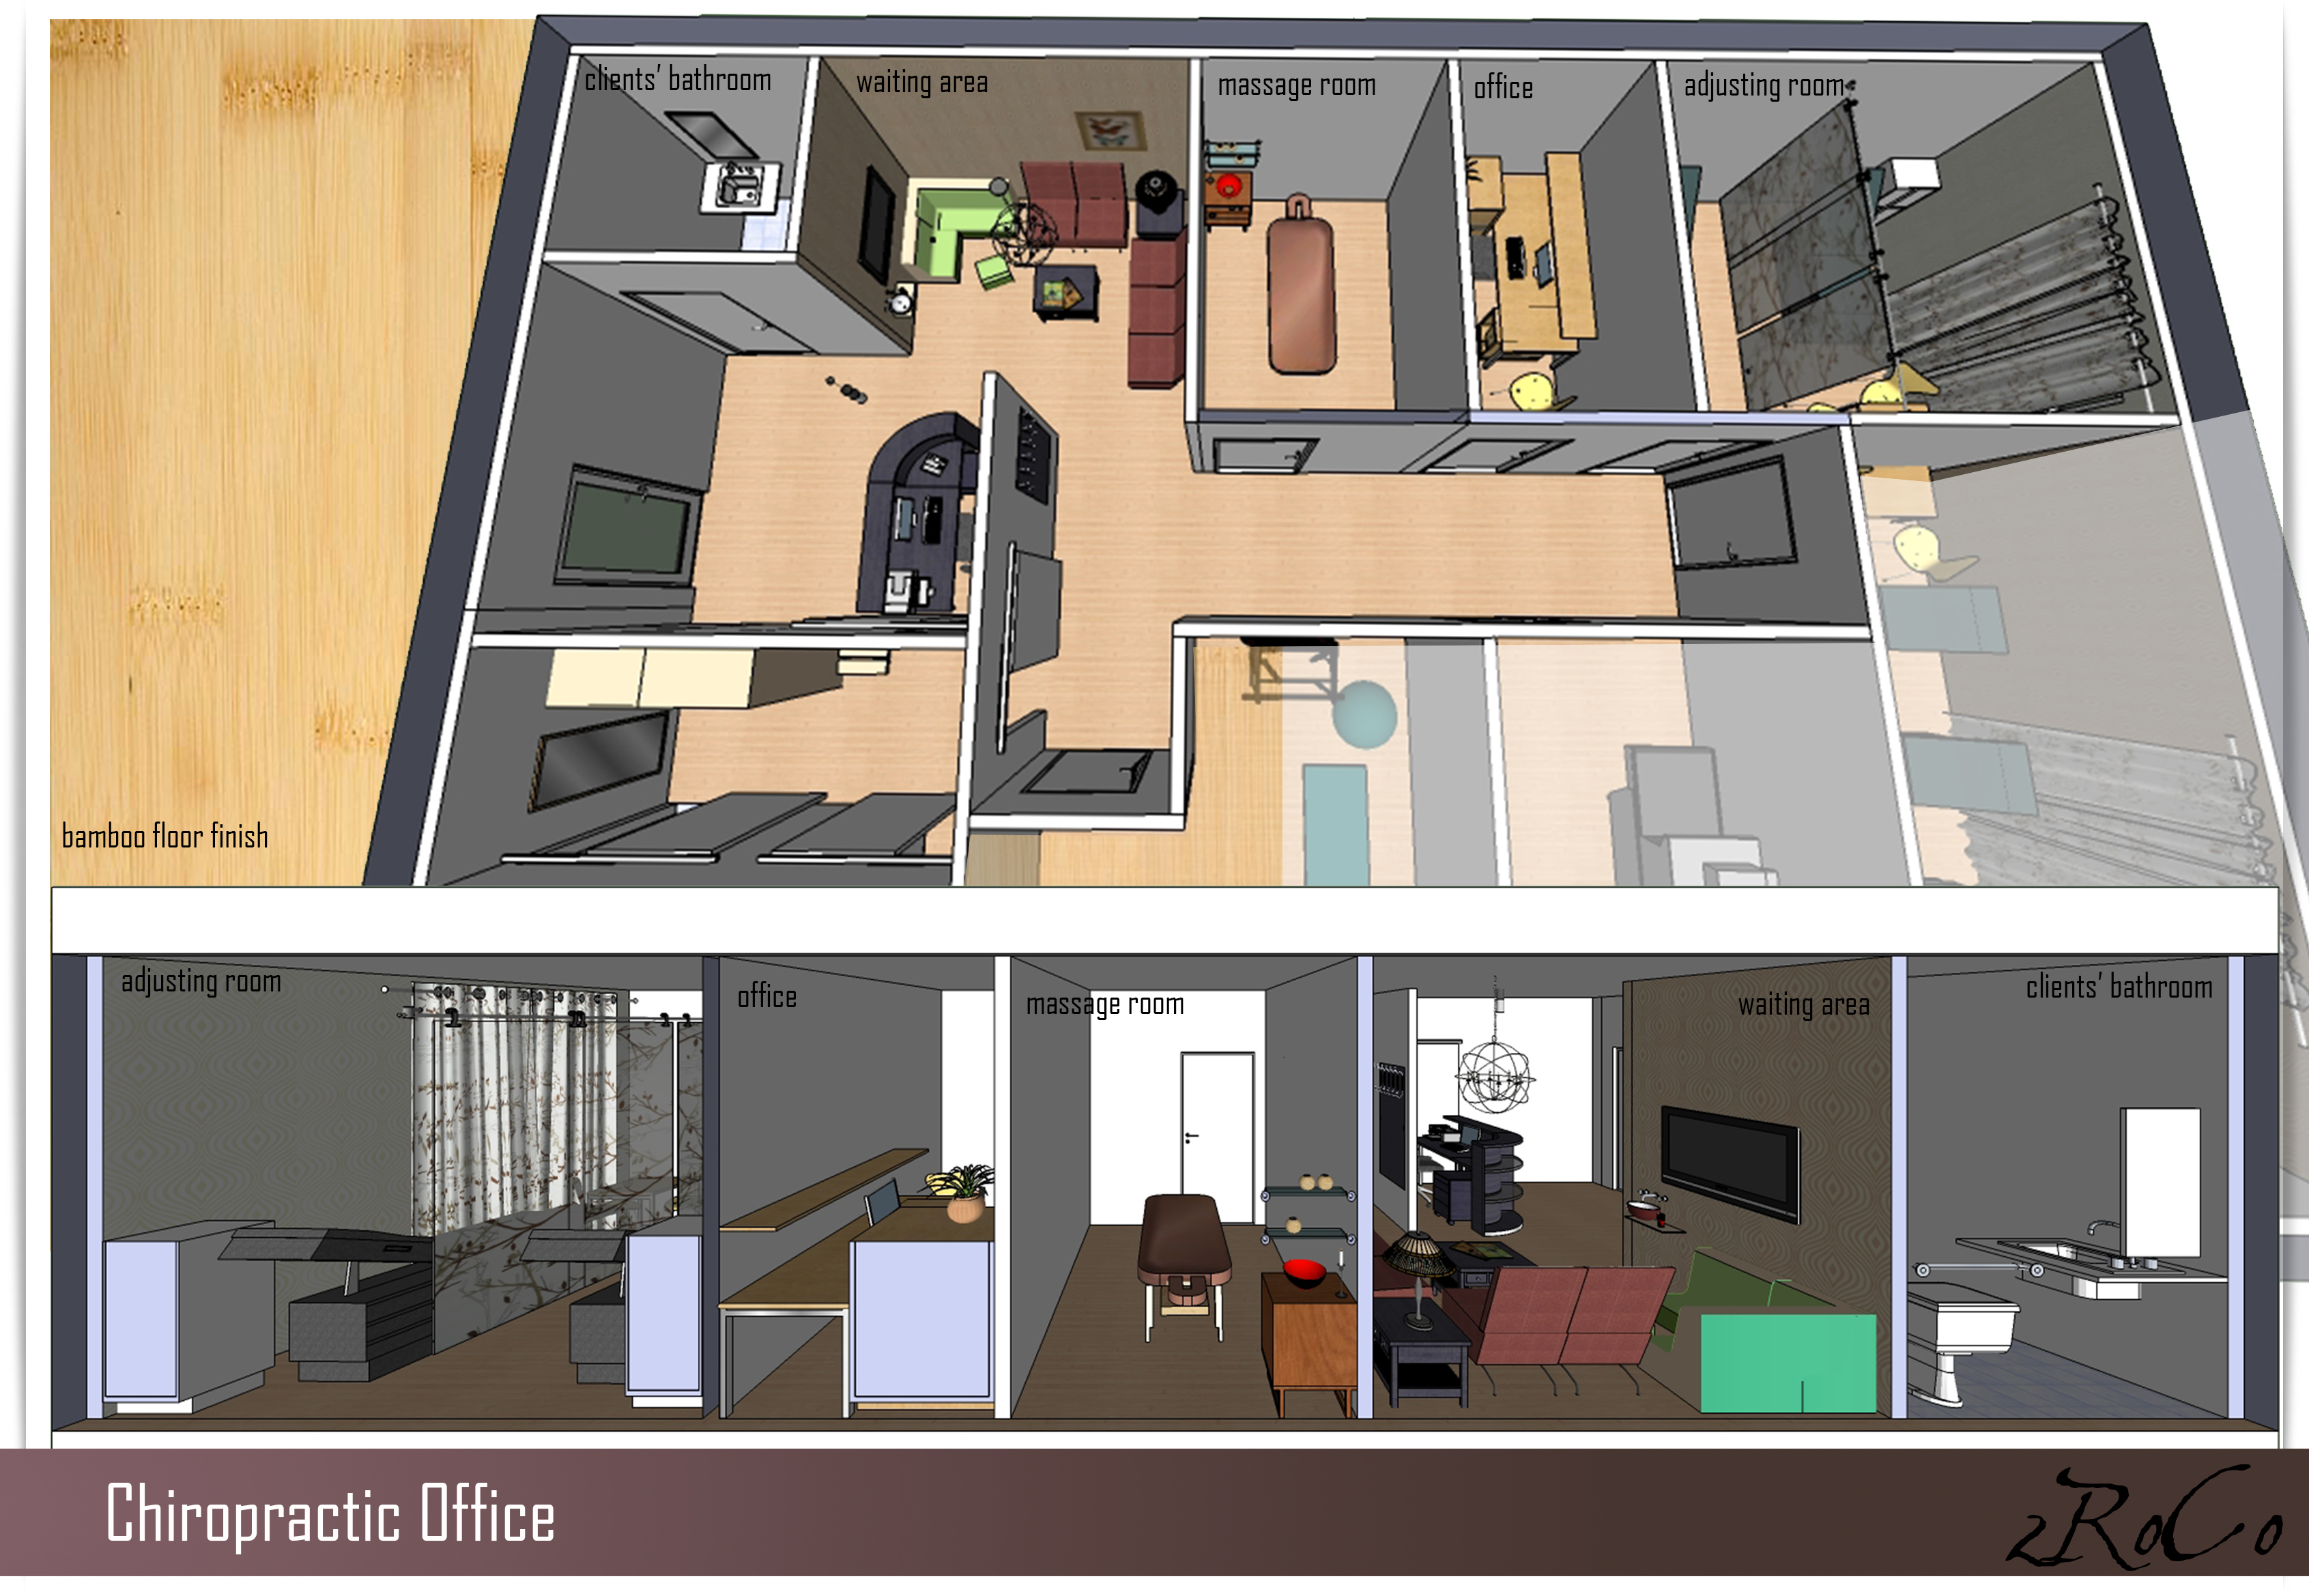 Psychologist Office Design Ideas Chiropractic office honorable